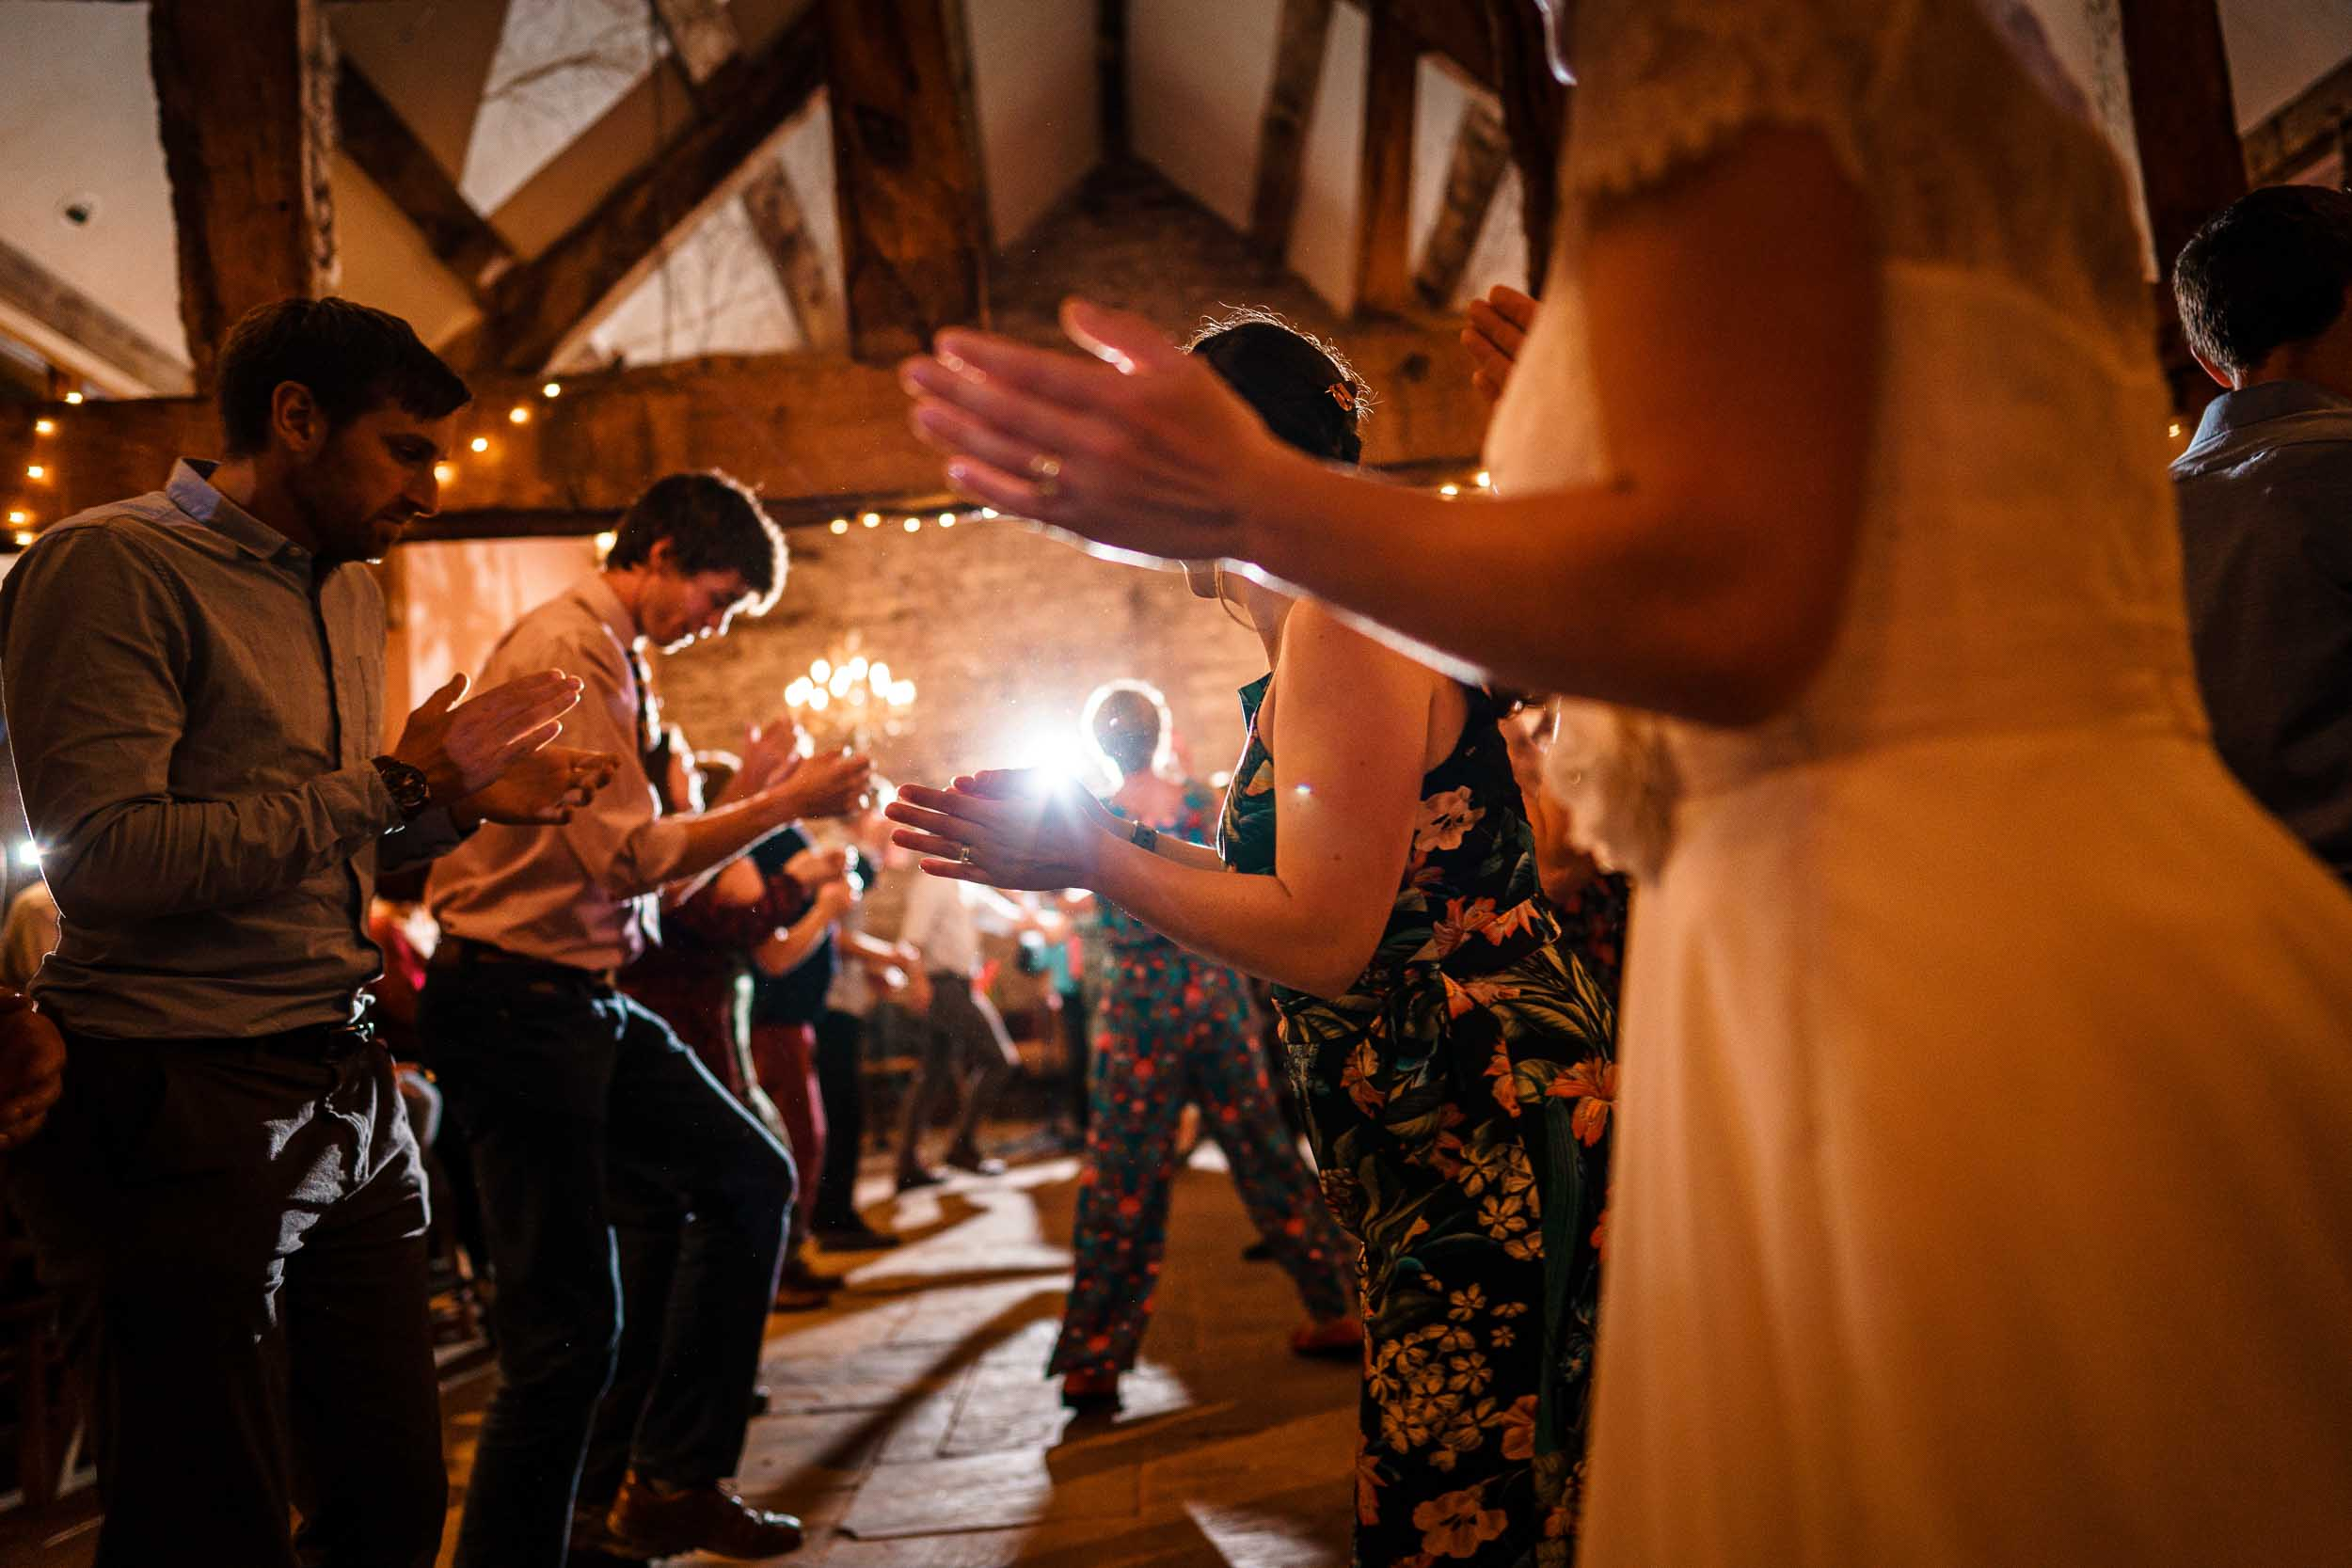 Lower House Farm, Bespoke by Nature, Herefordshire, Wedding Photography